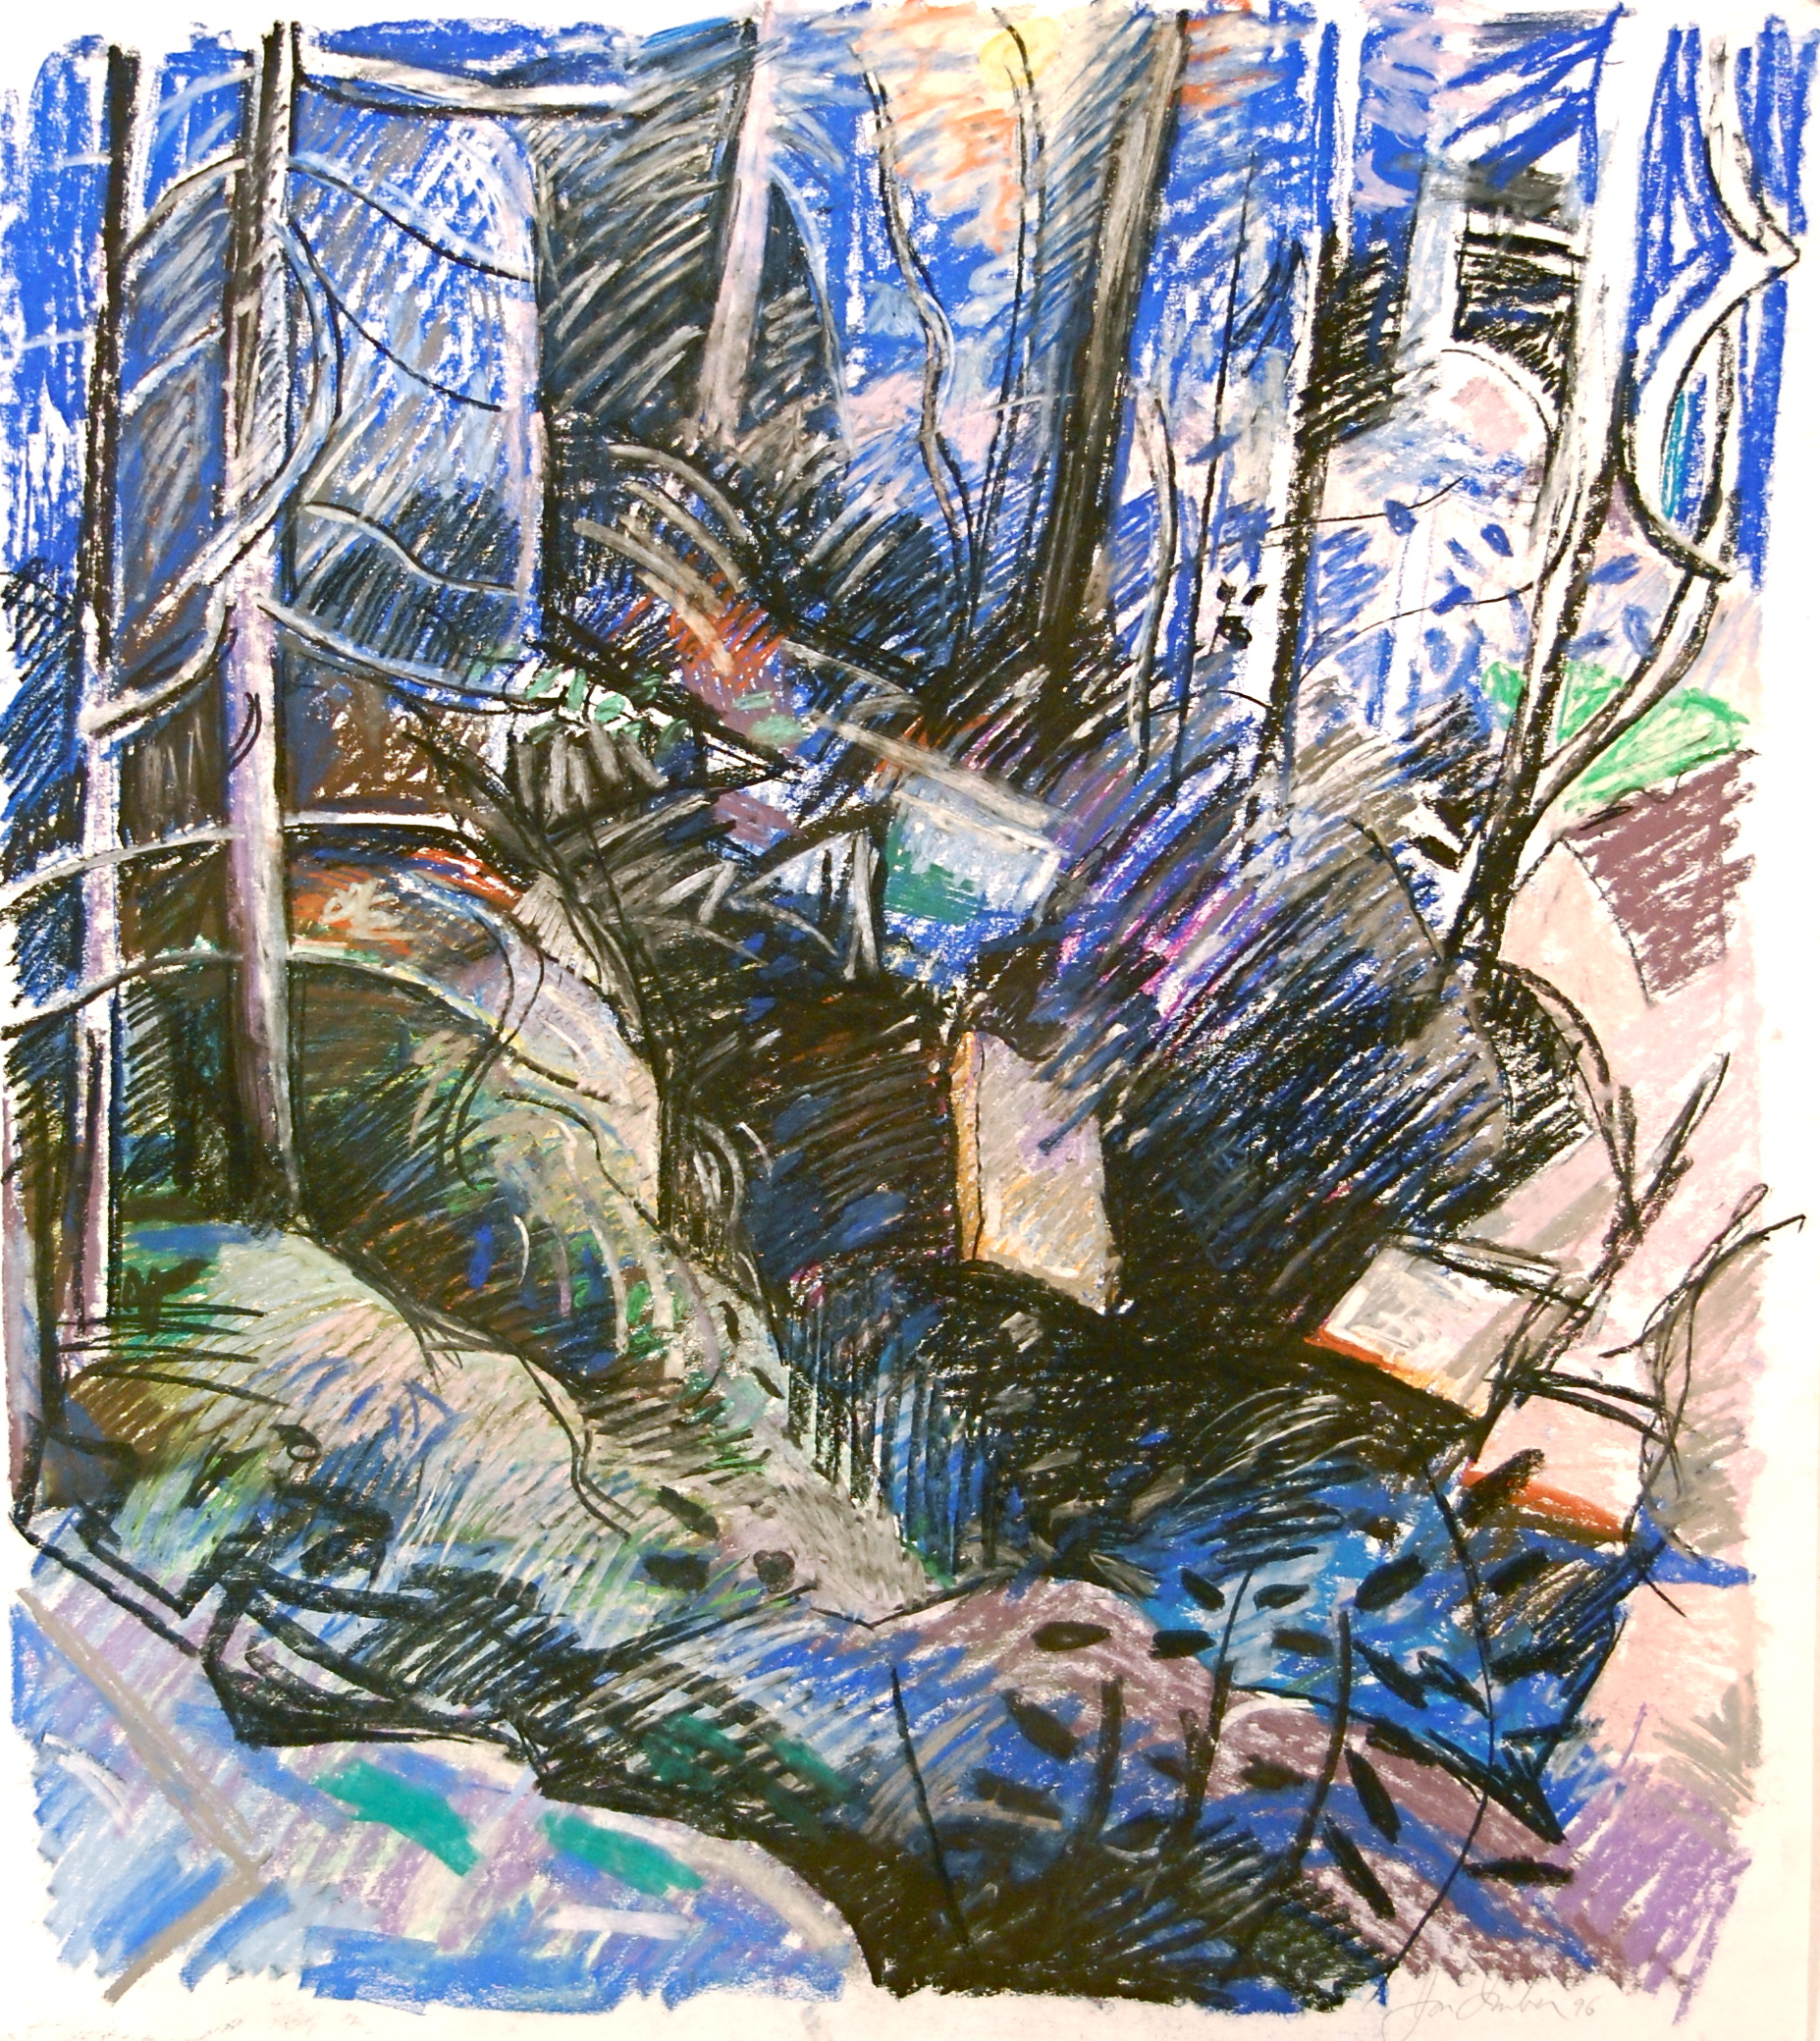 Cobalt Woods, 1996 pastel on paper, 38 x 34 inches